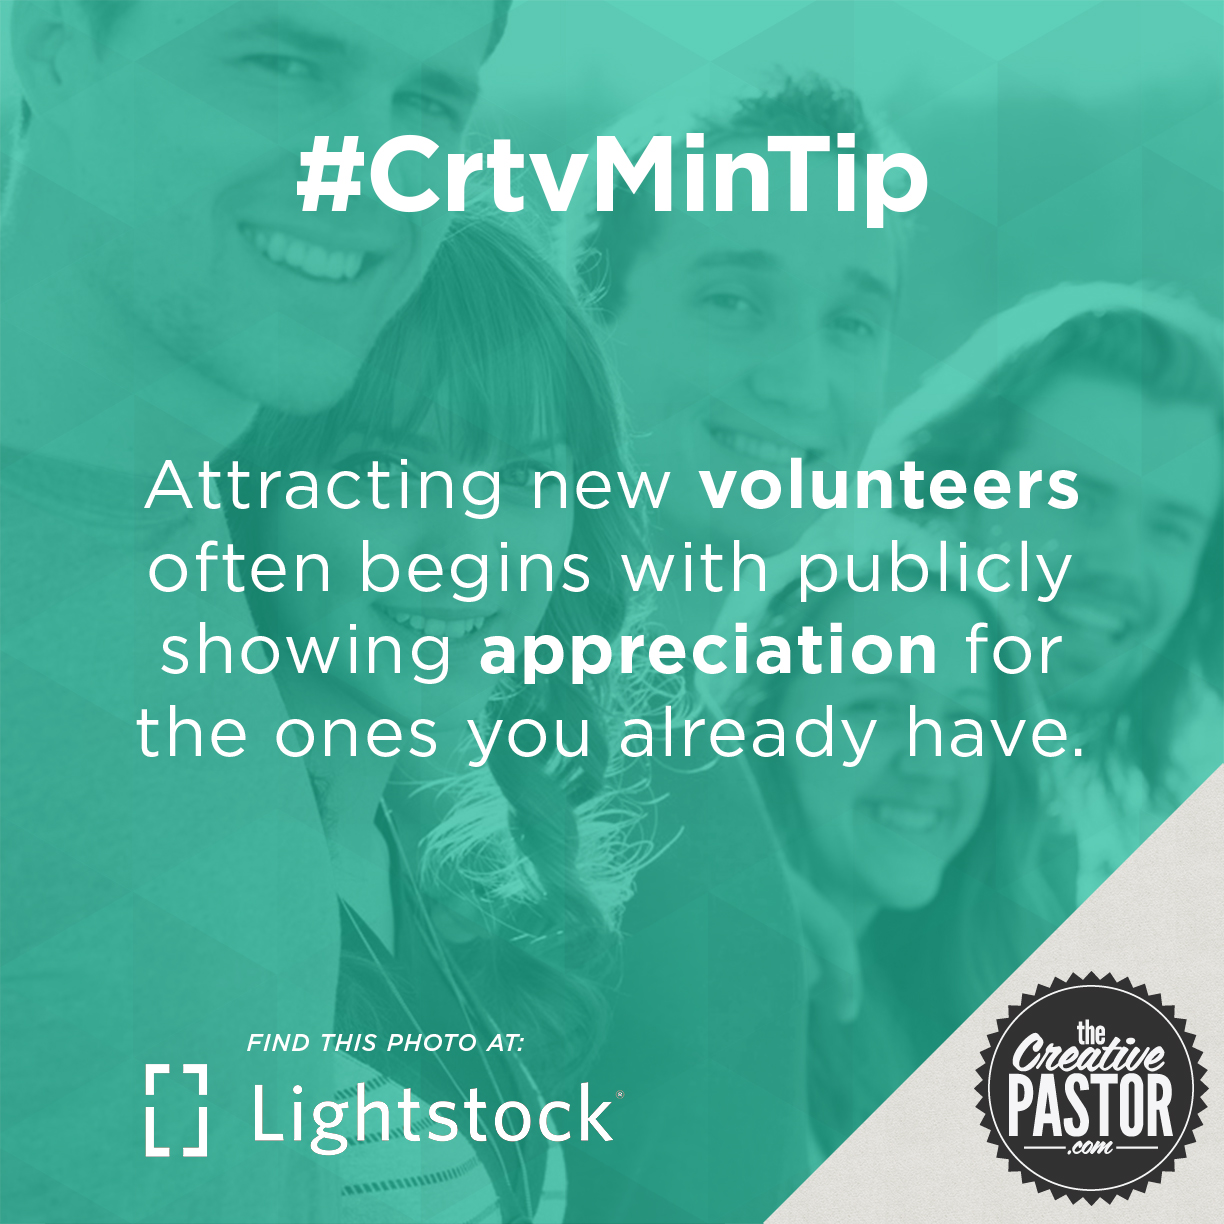 Attracting new volunteers often begins with publicly showing appreciation for the ones you already have.